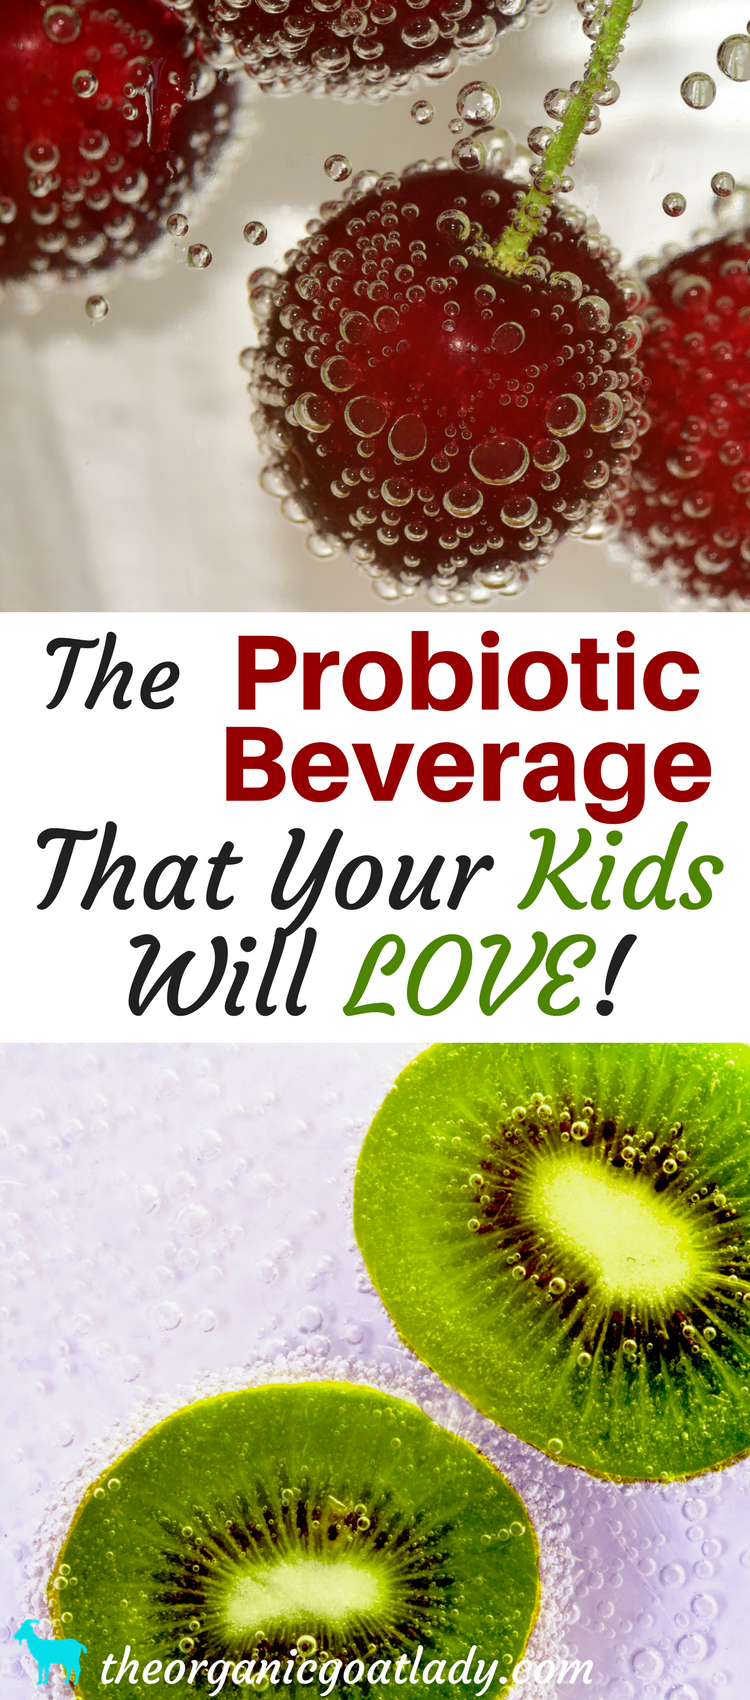 The Probiotic Beverage That Your Kids Will Love!